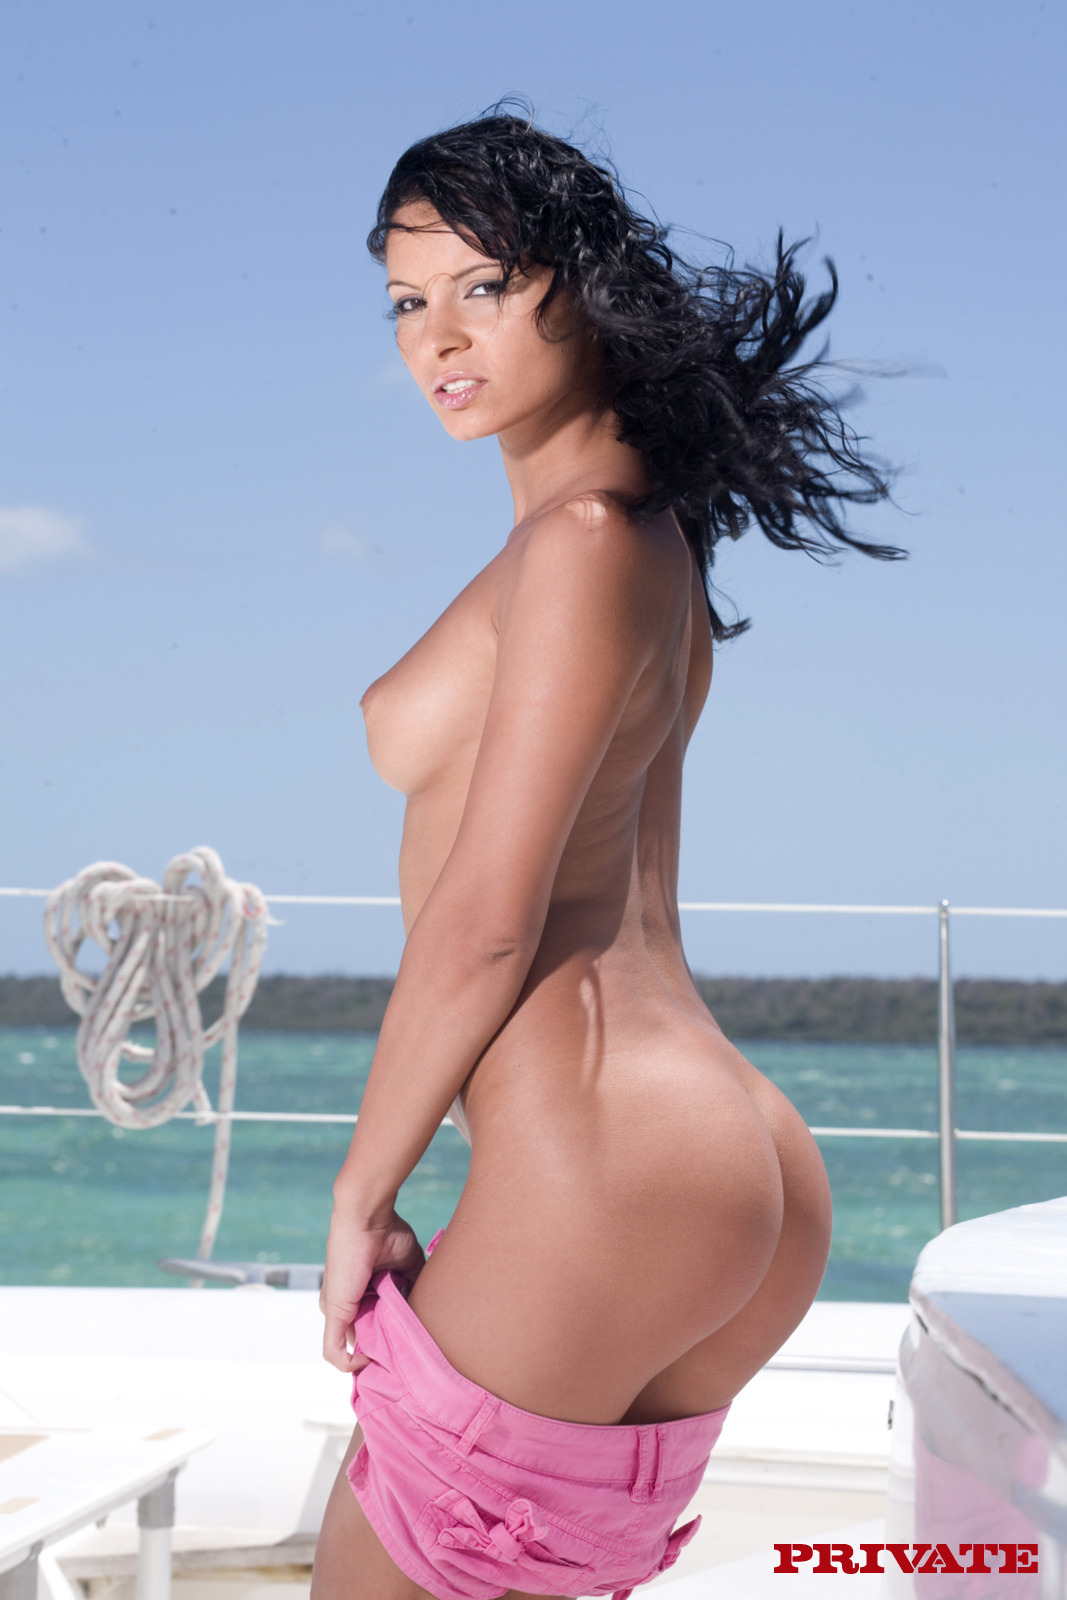 cdnhw galleries private Lucy Belle Boroka Does The Caribbean 1